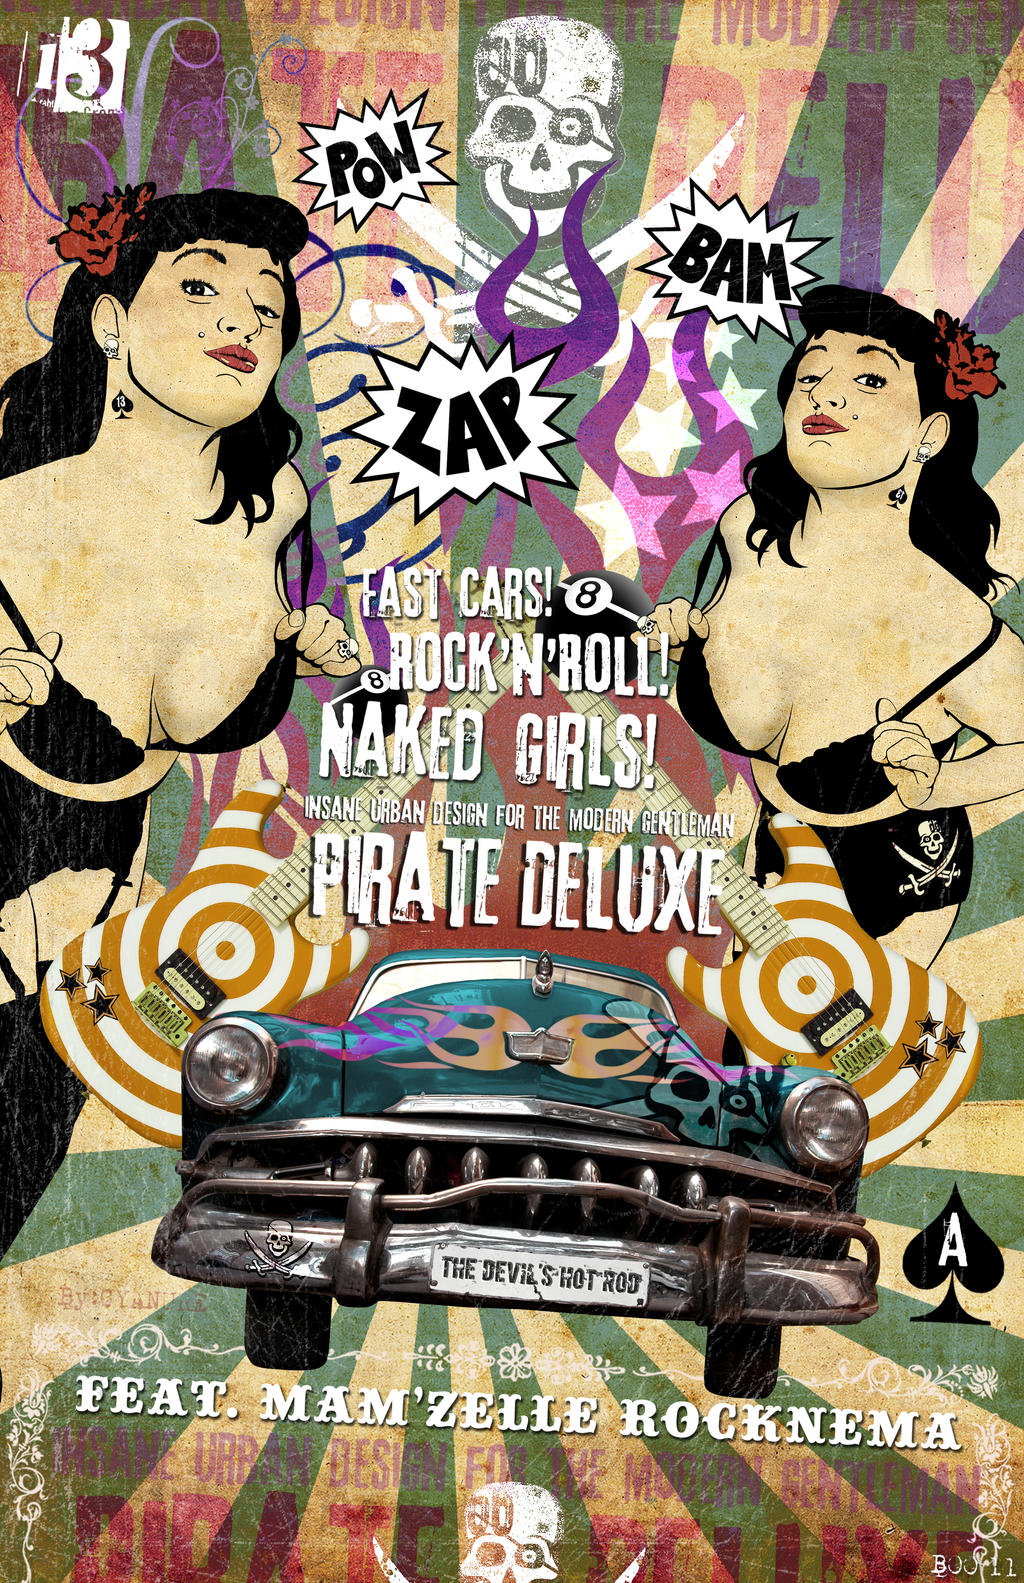 Pirate Deluxe Rockabilly Poster E by misfitmalice